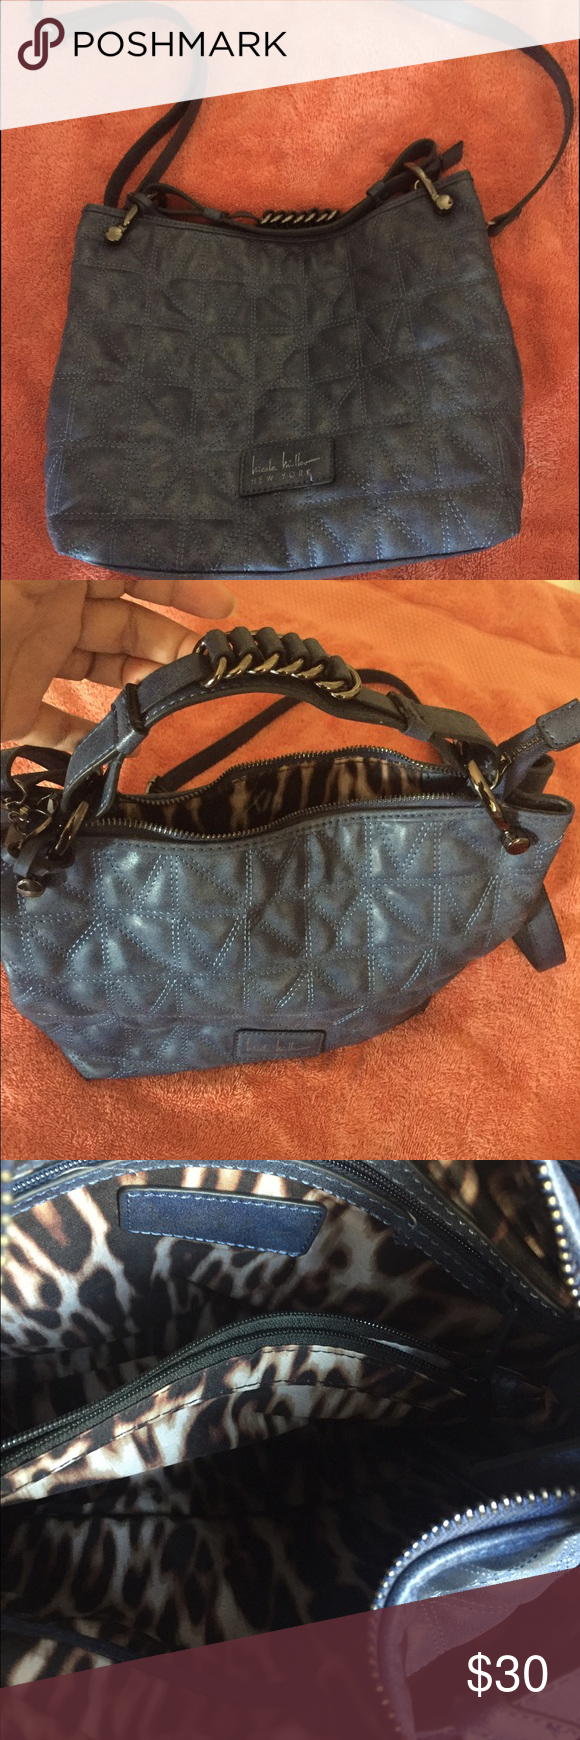 Nicole Miller cross body bag. Nicole Miller Cross body bag. Blue in color. Very good condition.                                                             FINAL SALE!!!! Will be donated soon!! Nicole Miller Bags Crossbody Bags